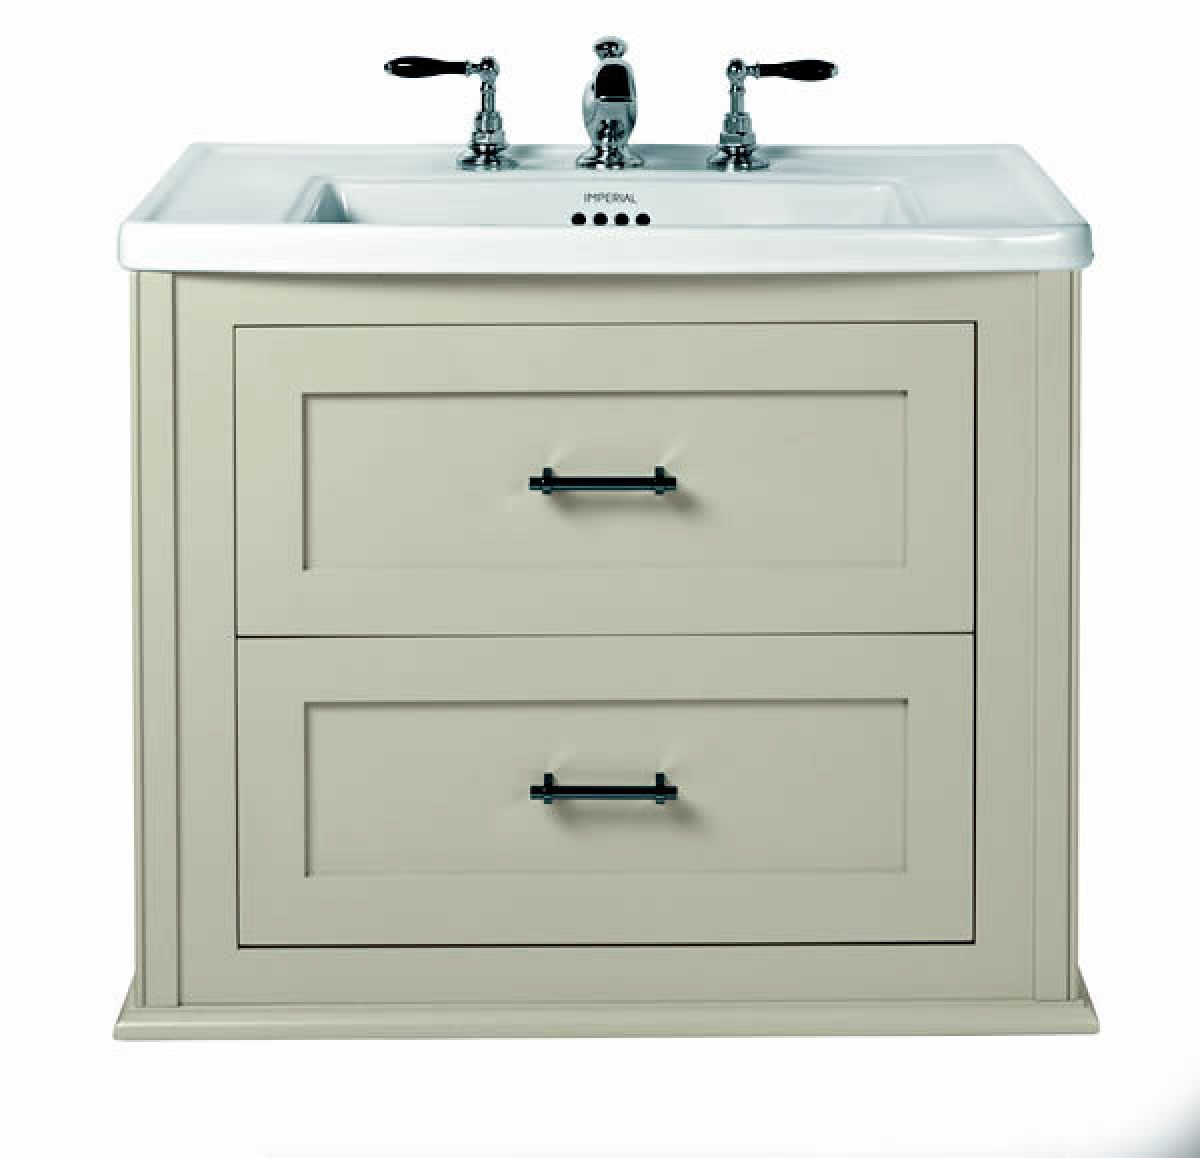 imperial radcliffe thurlestone wall hung vanity unit uk bathrooms